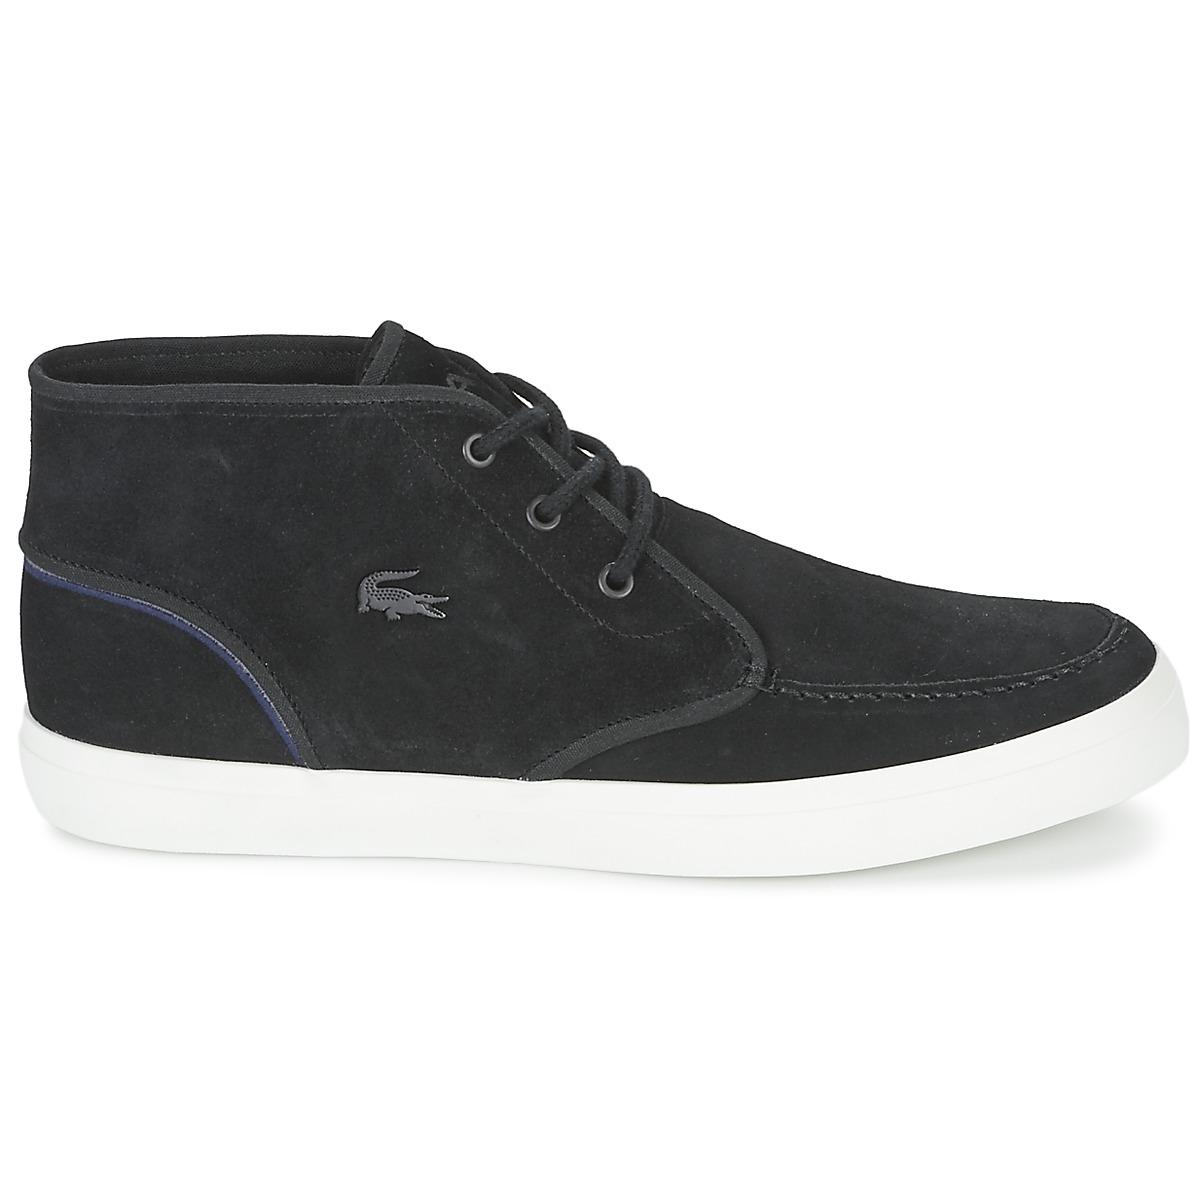 8782bb667067a Lacoste - Black Sevrin Mid 316 1 Shoes (high-top Trainers) for Men. View  fullscreen